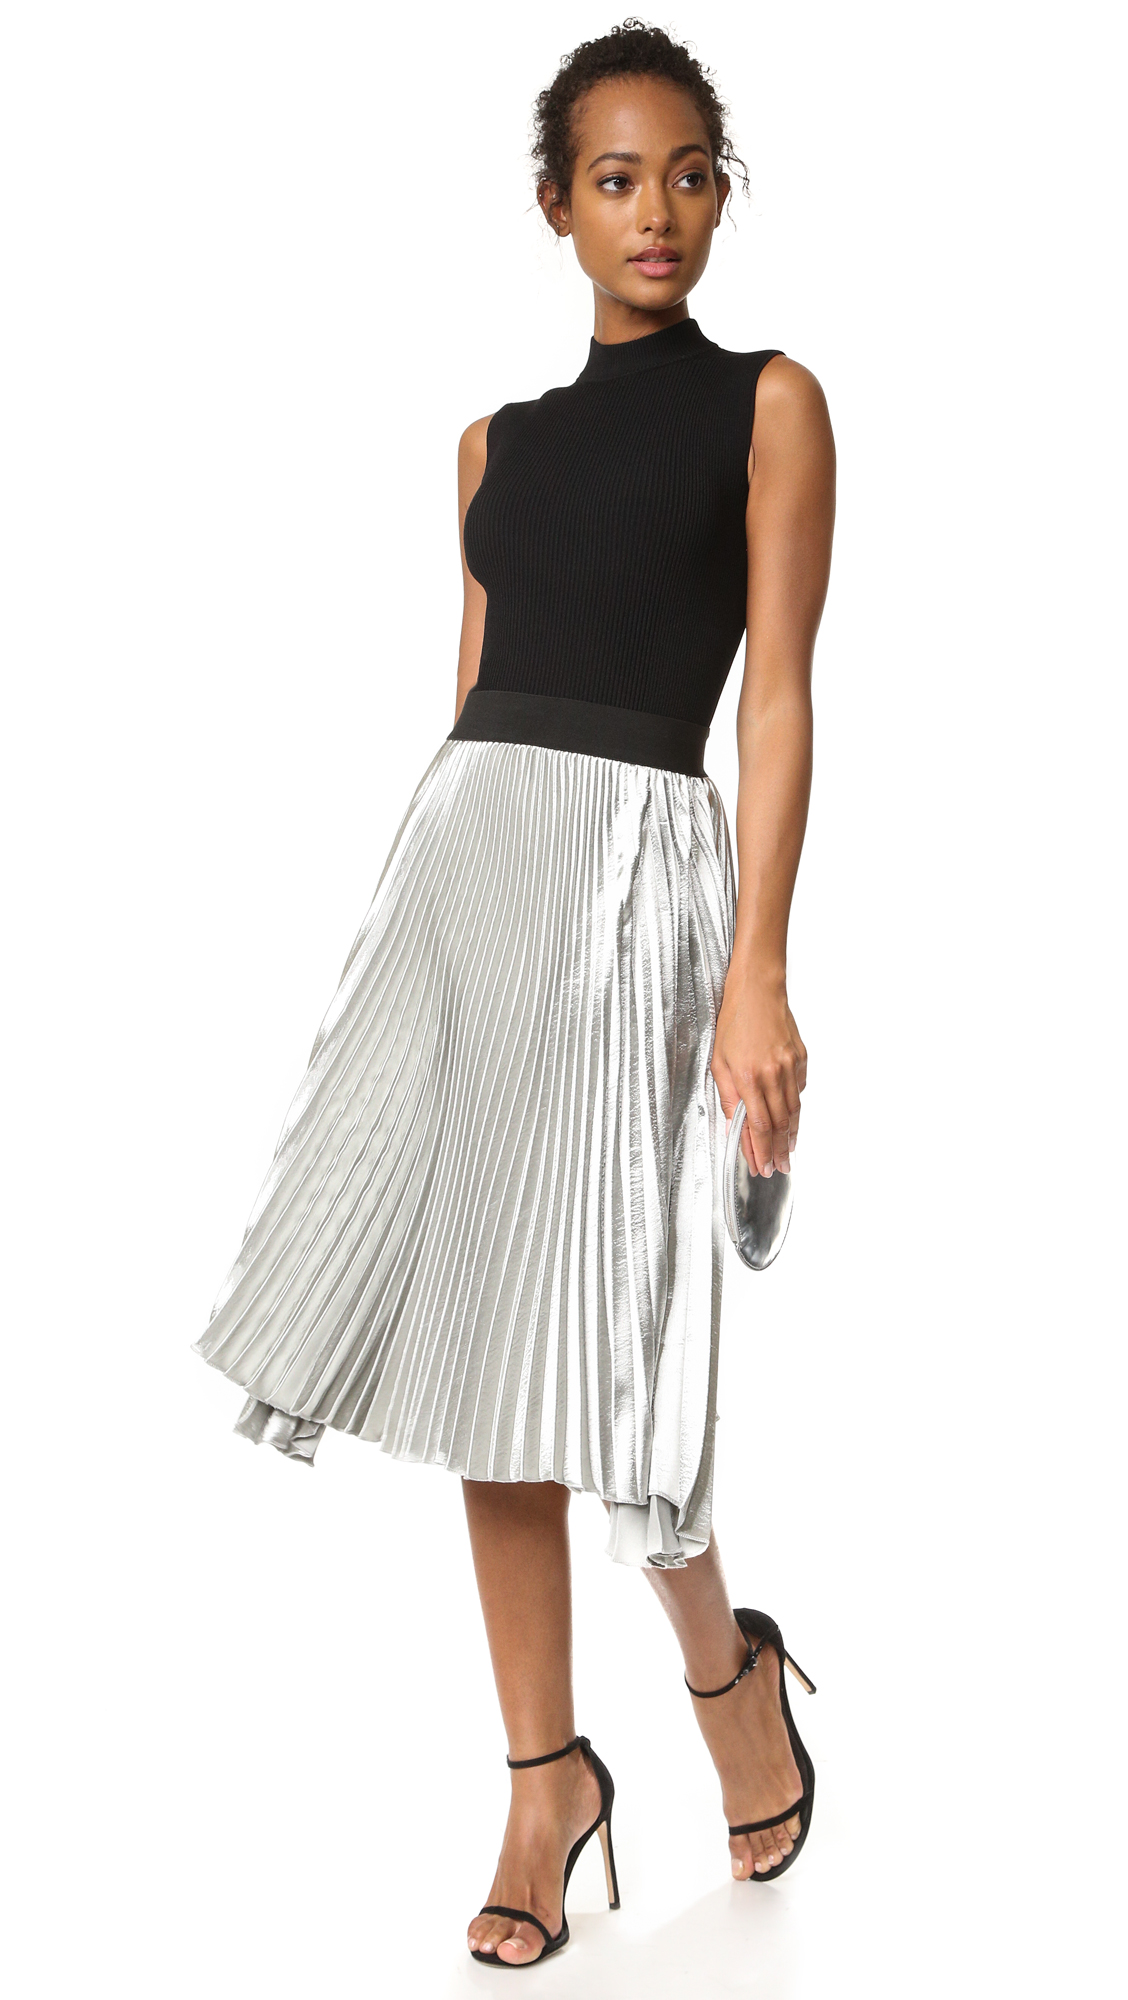 848acdec0 STYLEKEEPERS Retro Juliette Pleated Skirt | SHOPBOP